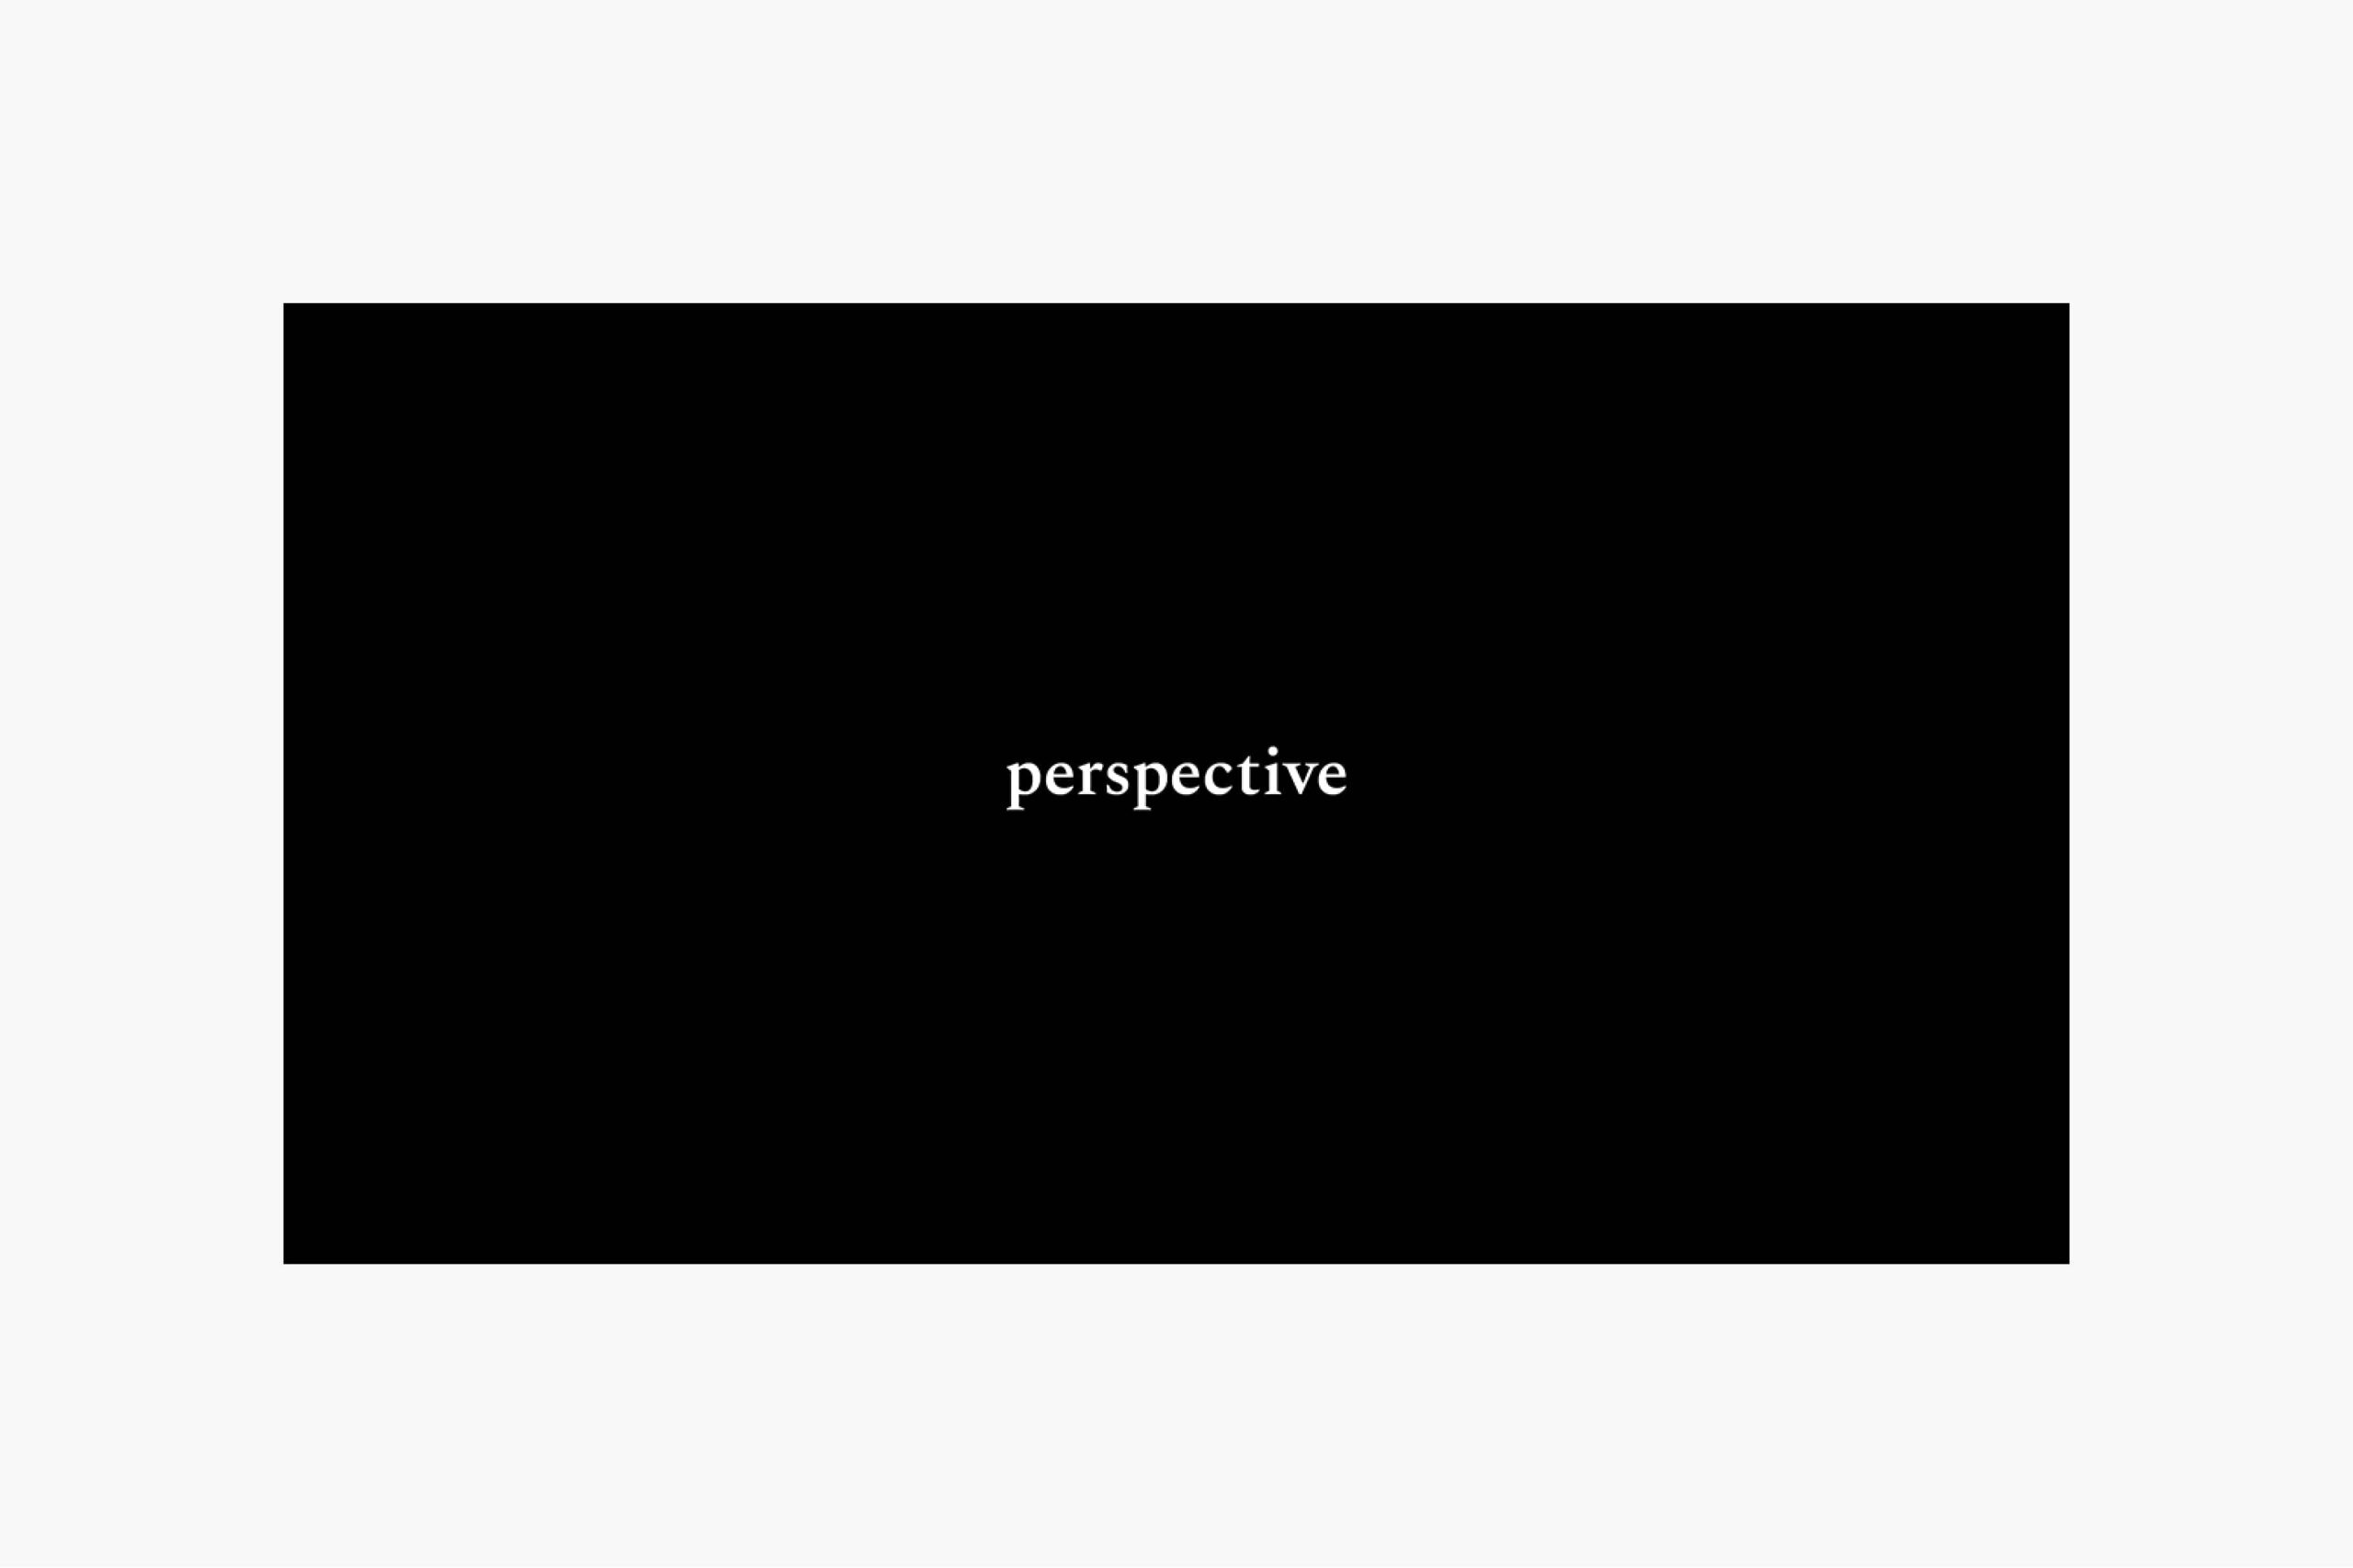 perspective-01